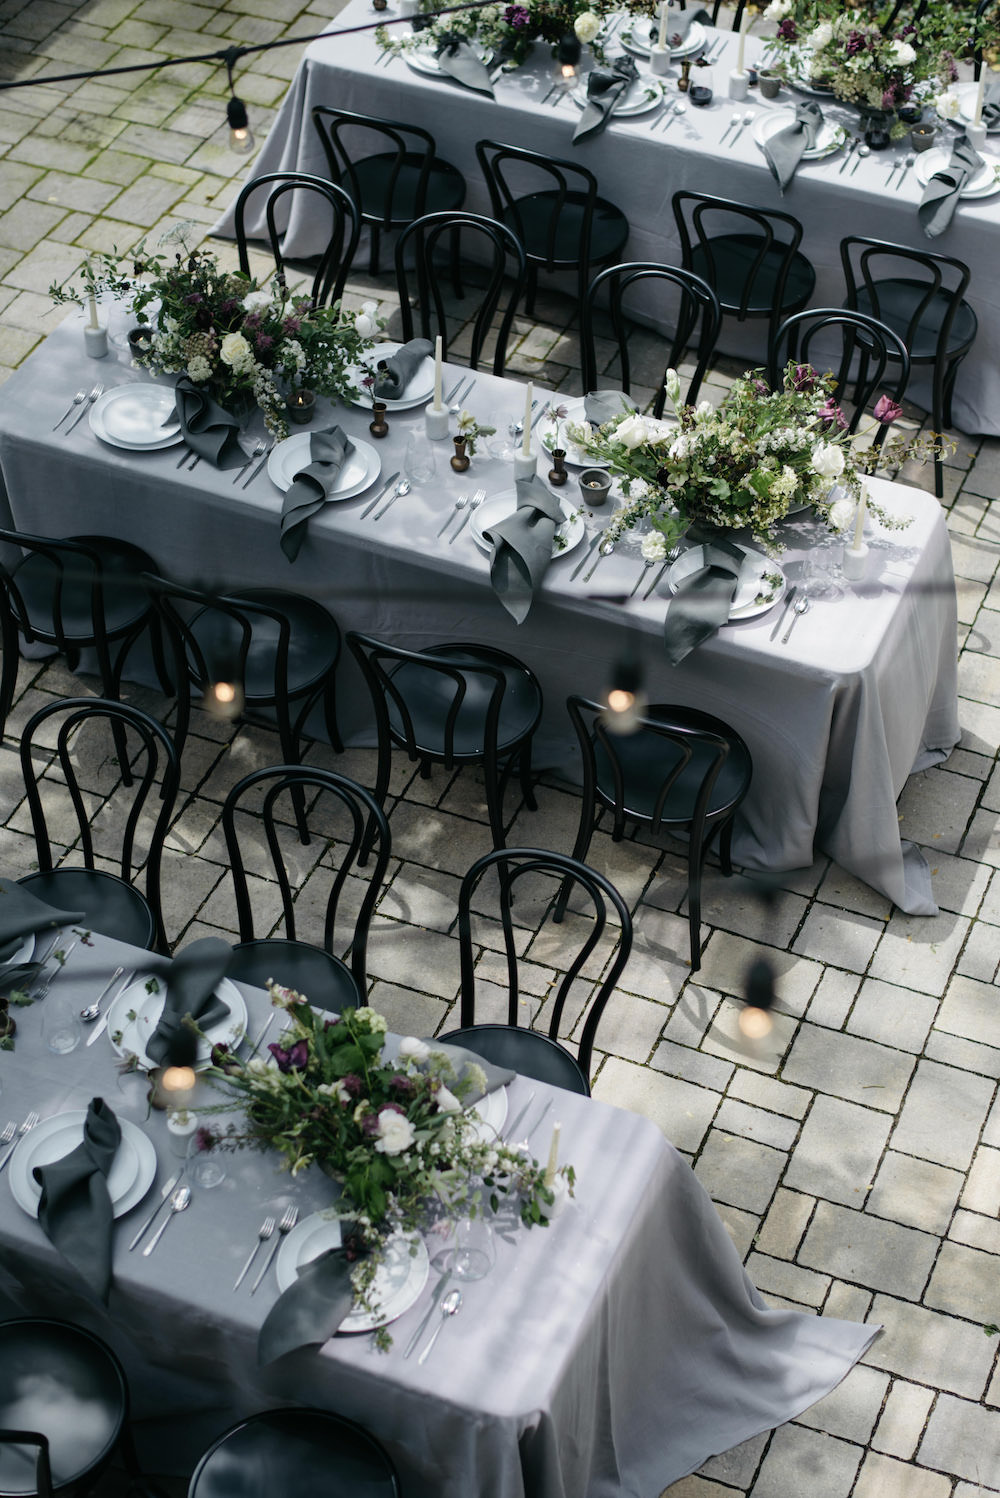 12th-Table-WEDDING-RENTALS-NASHVILLE-Lounge-Chairs-for-Rent-ENTERTAINING-party-rentals-event-rentals-Germantown-Inn-79.jpg